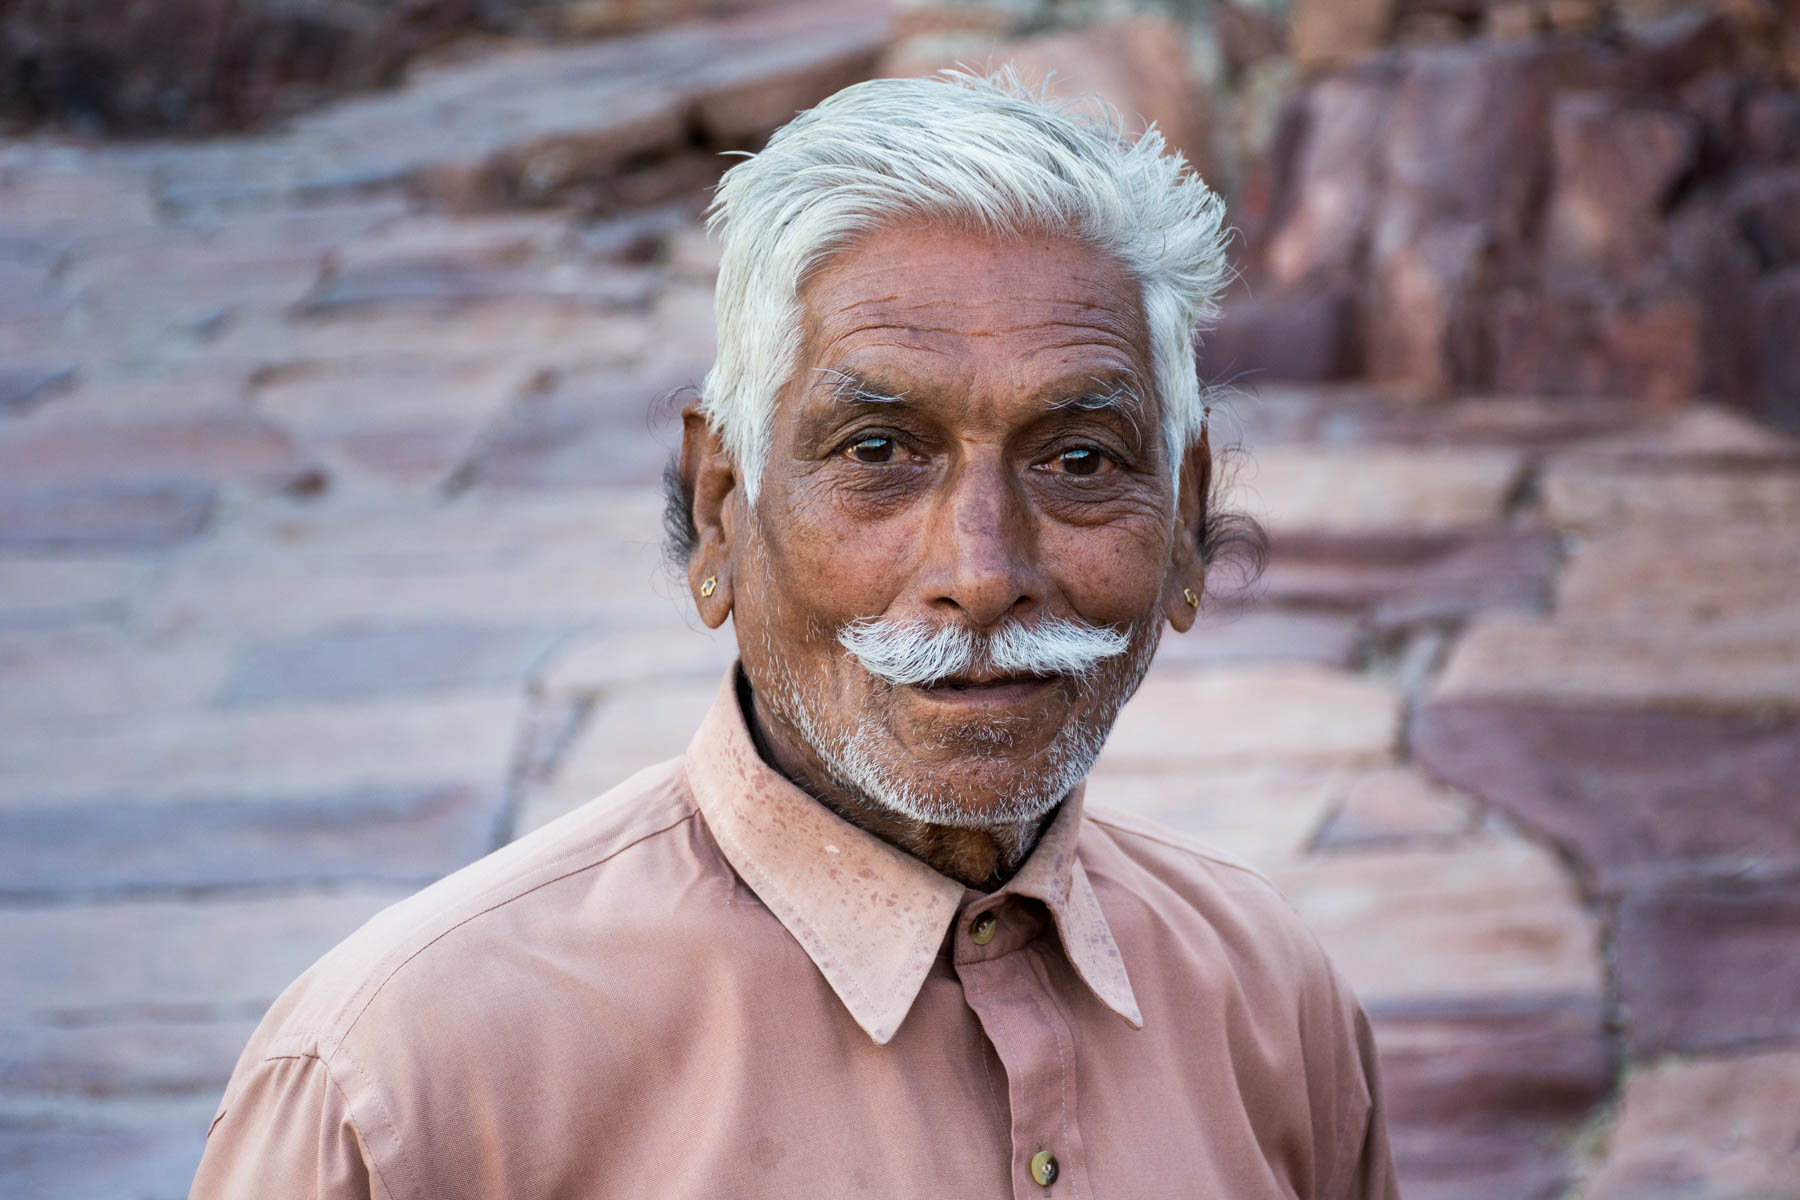 Photo essay about the streets and people of the Blue City of Jodhpur, Rajasthan, India - Mustached man in Jodhpur - Lost With Purpose